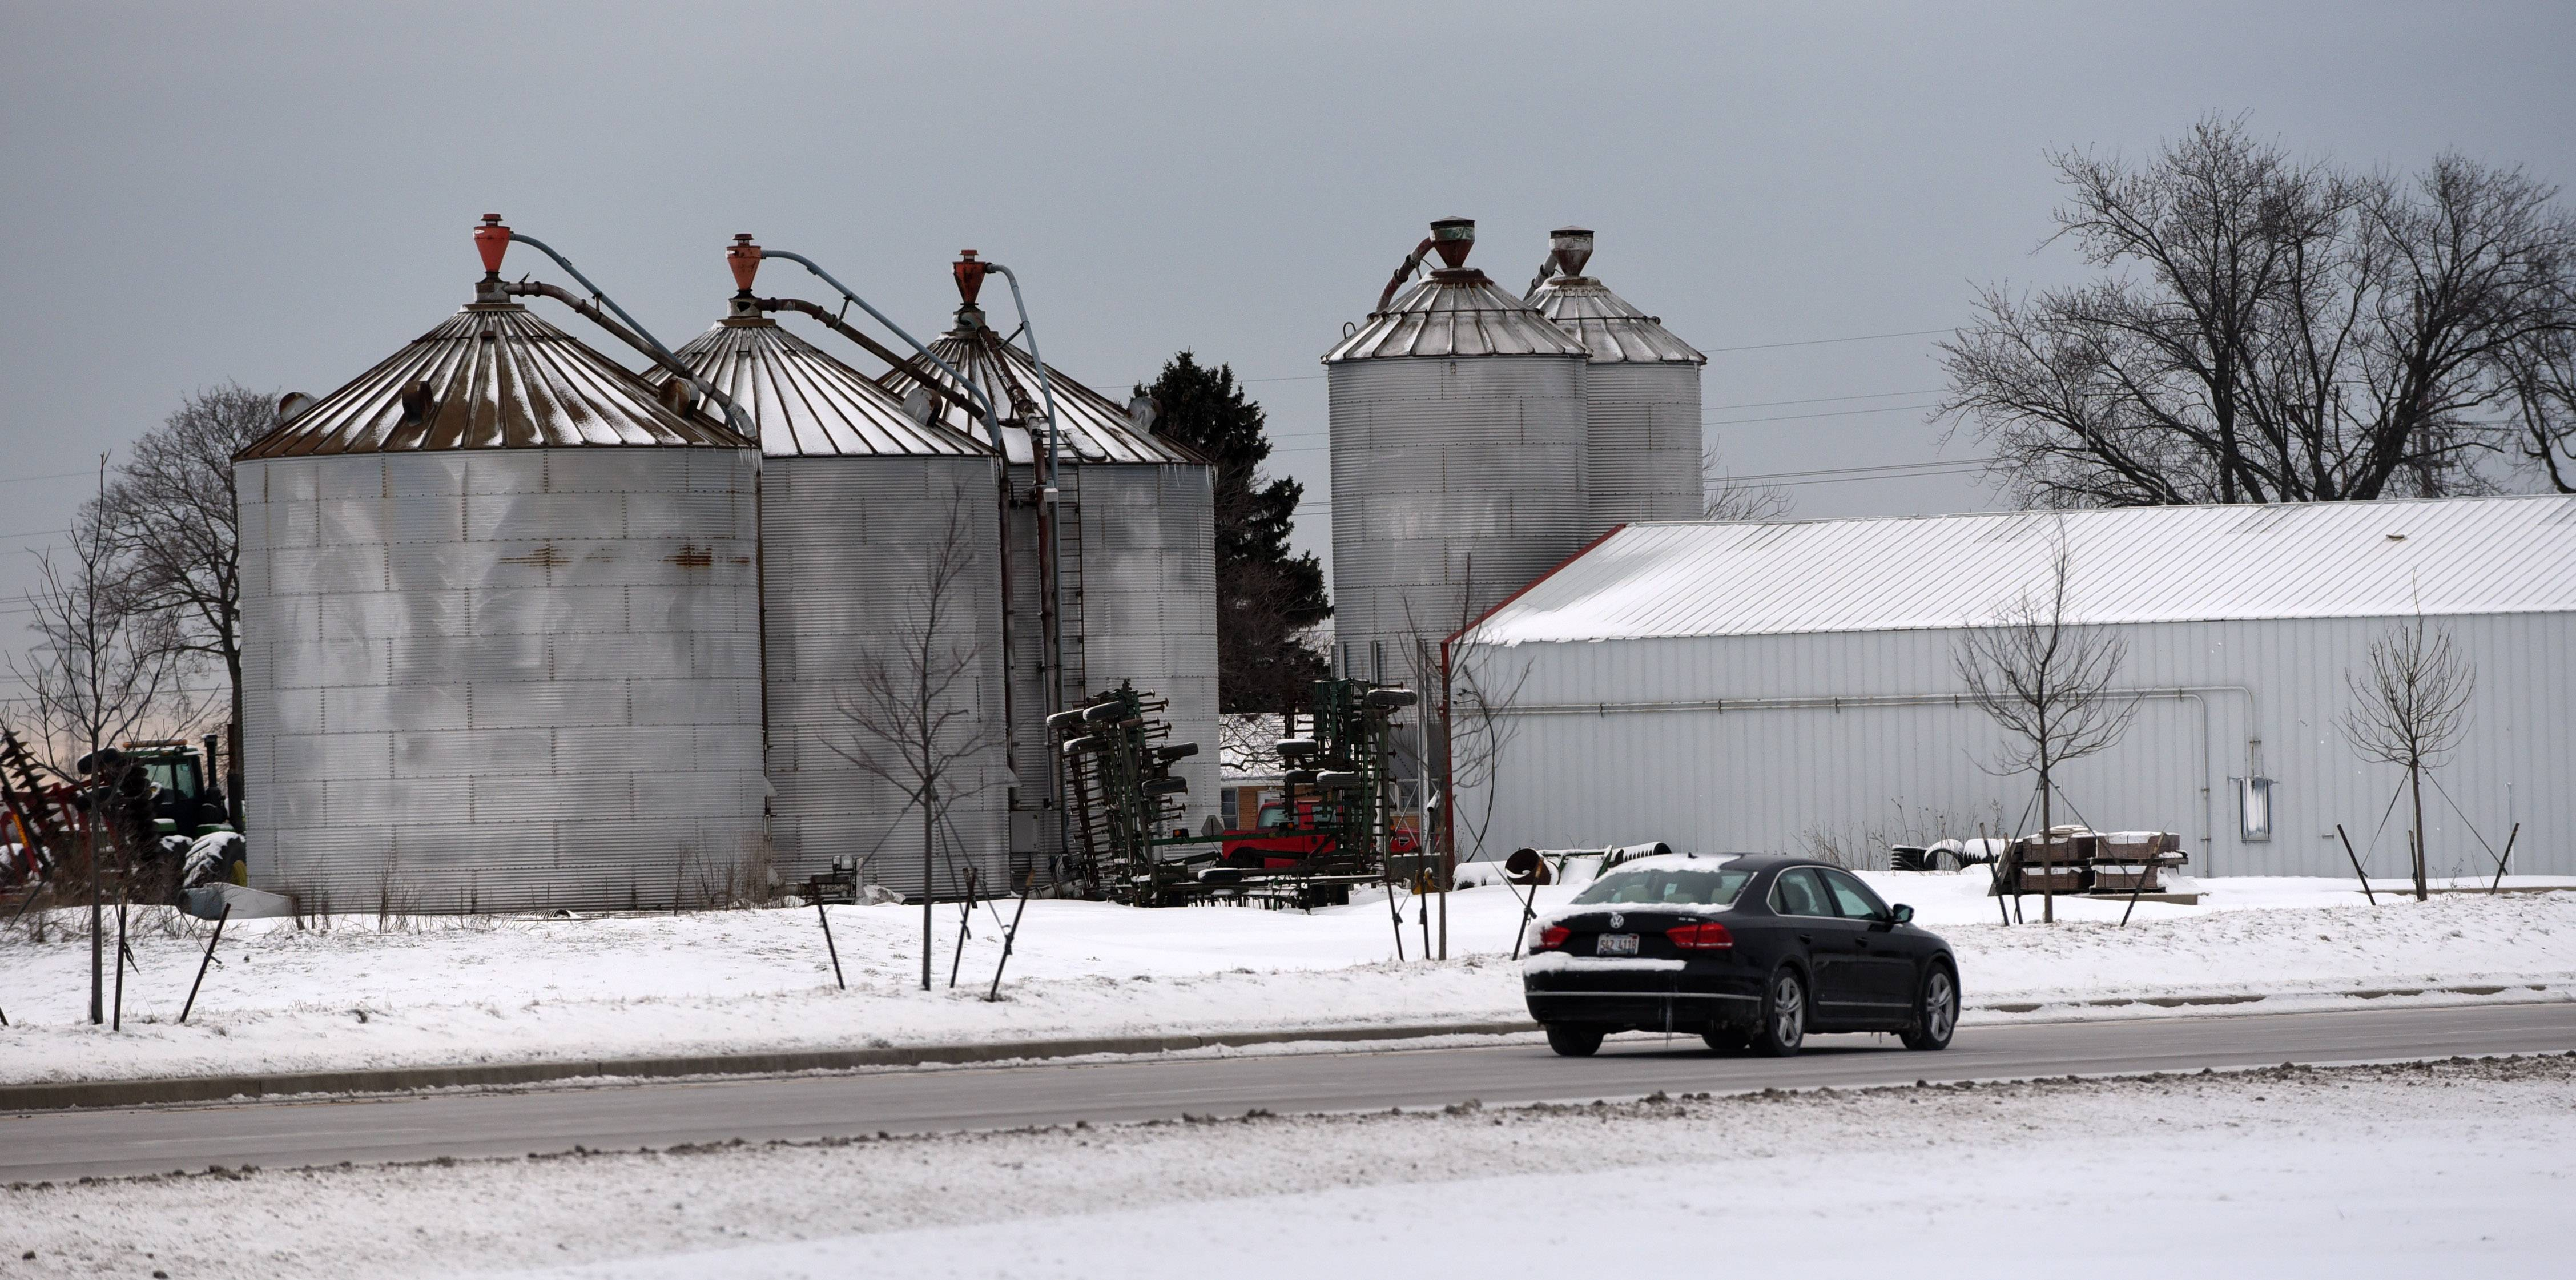 Will Meyer Farm sale spark growth spurt?